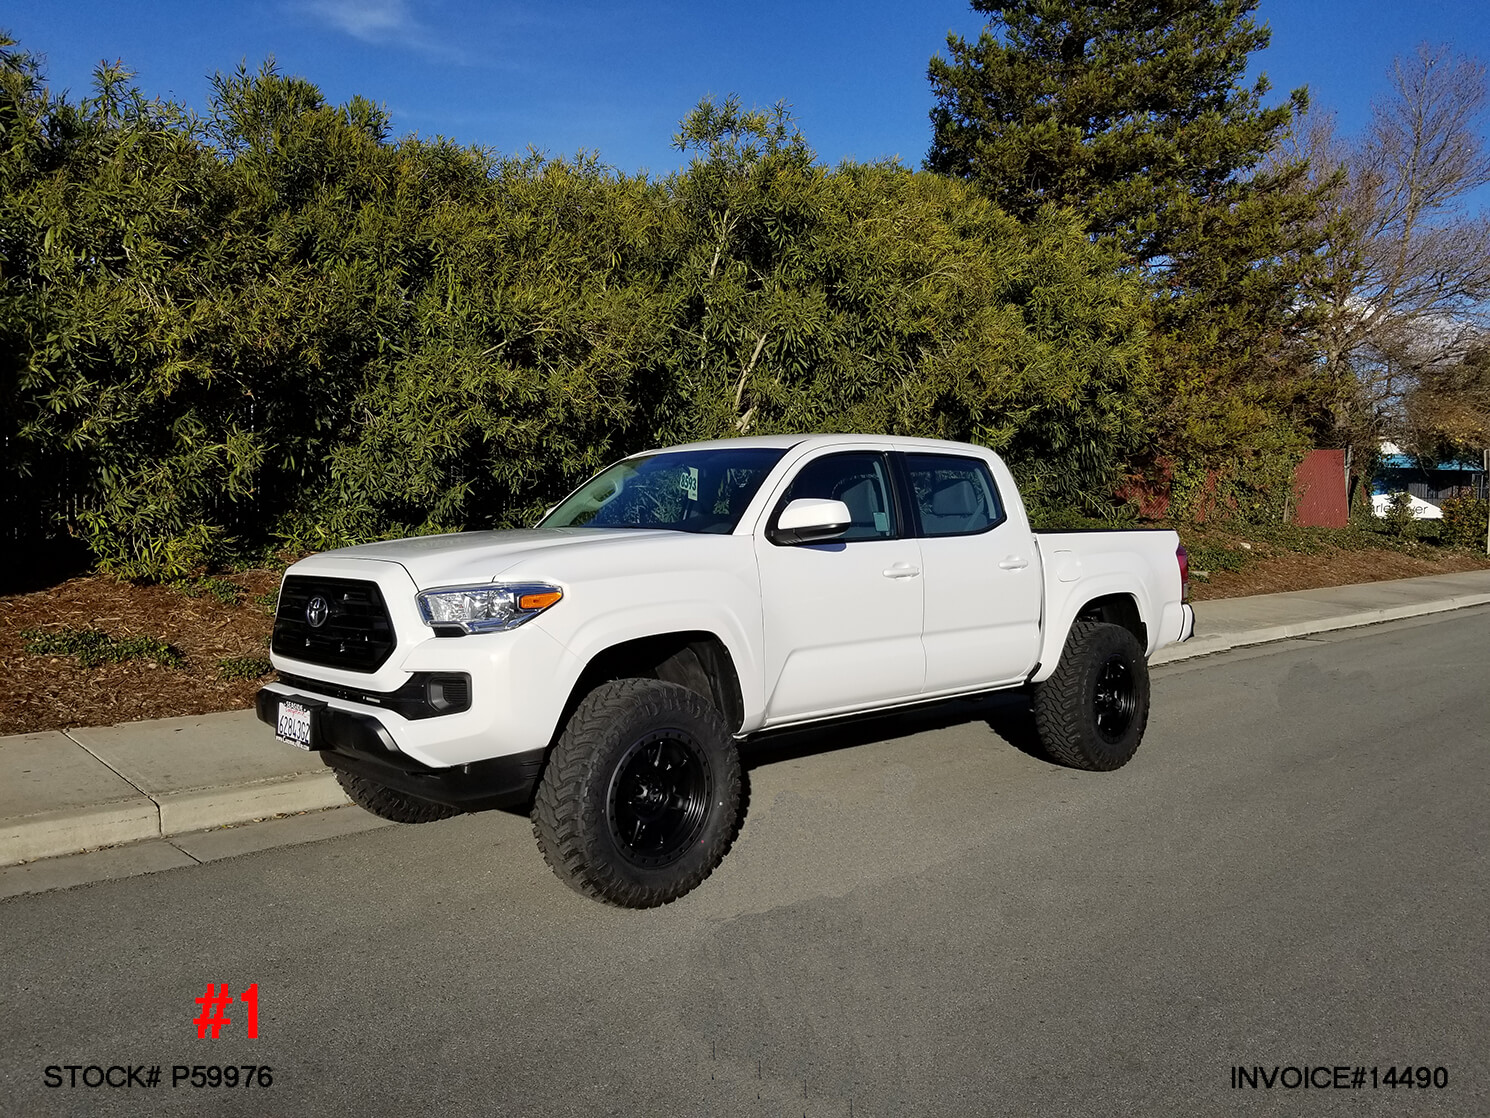 2017 TOYOTA TACOMA CREW CAB #P59976 | Truck and SUV Parts ...